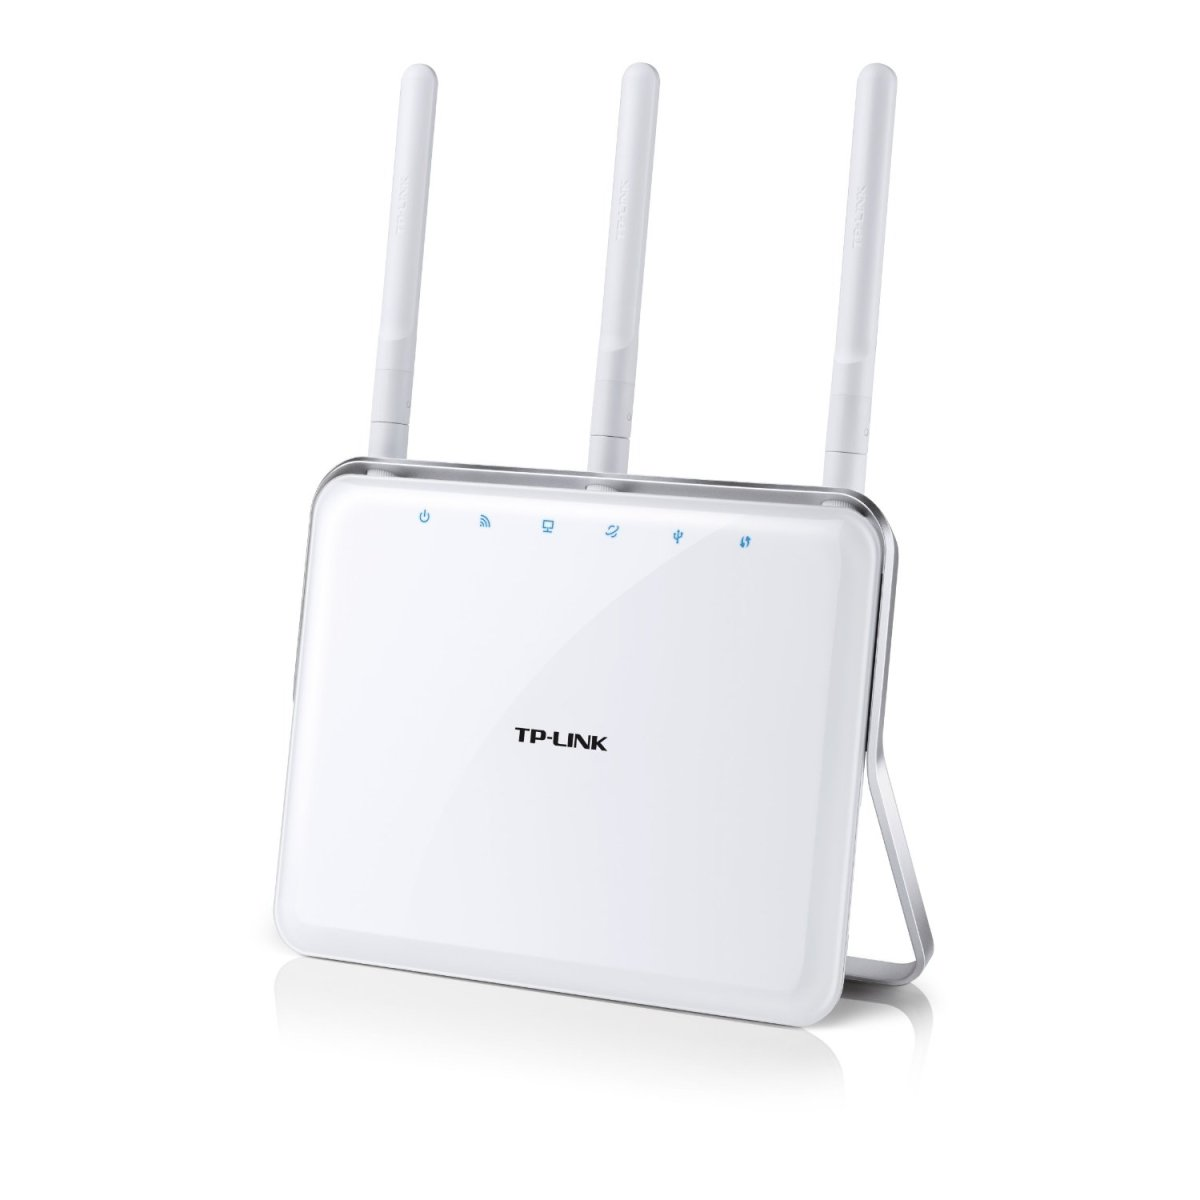 TP-Link Archer C8 wireless router